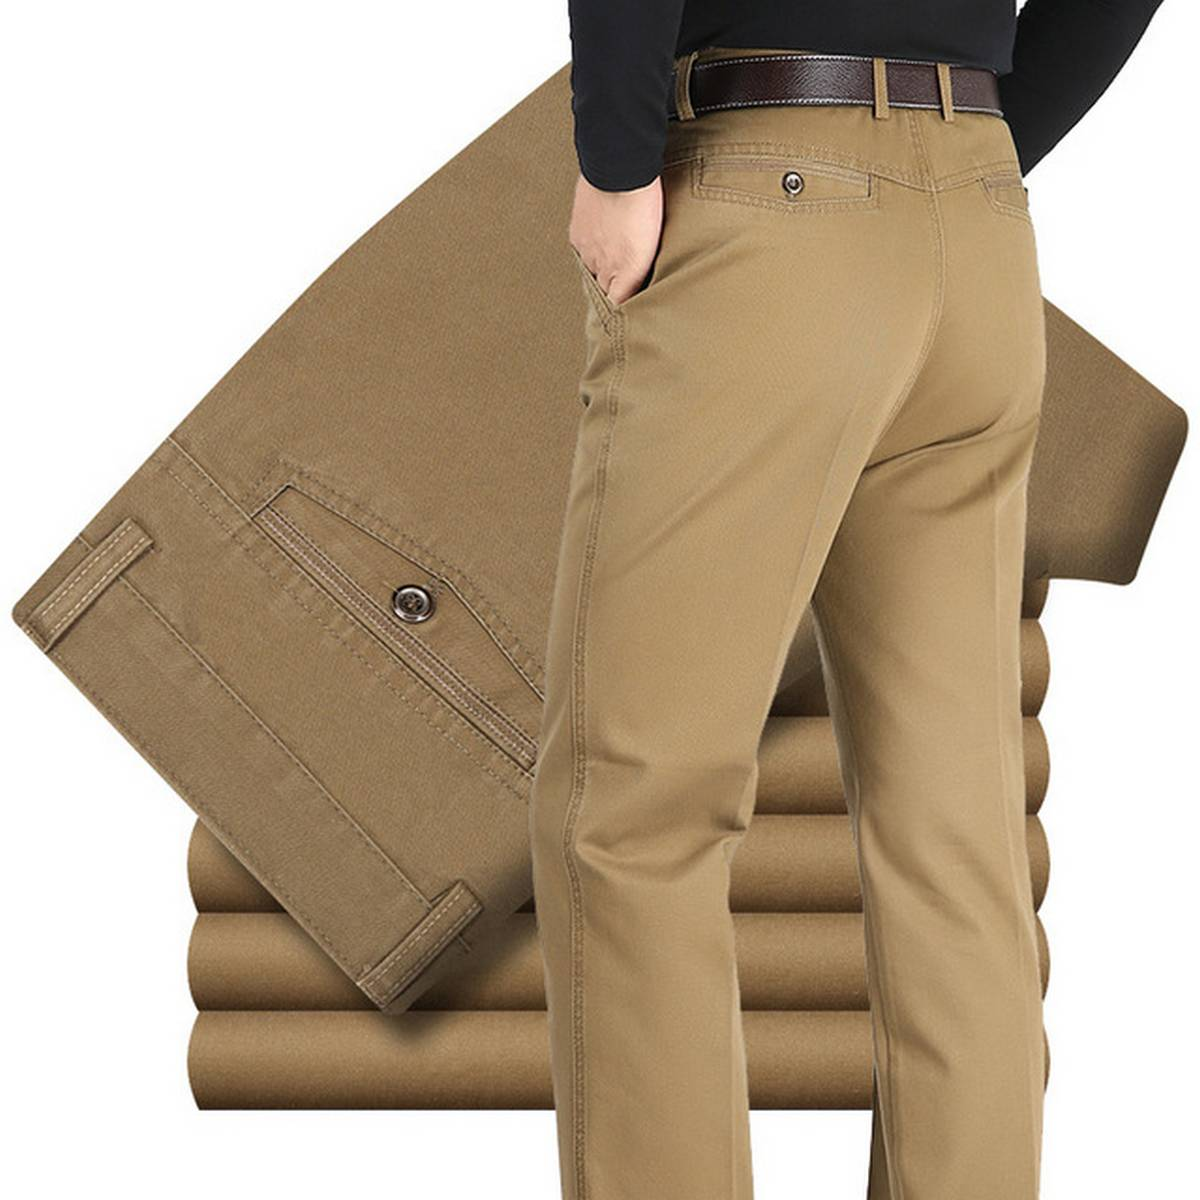 Trending Cotton Jeans Classic Camel Pants for Boys for Formal & Regular use